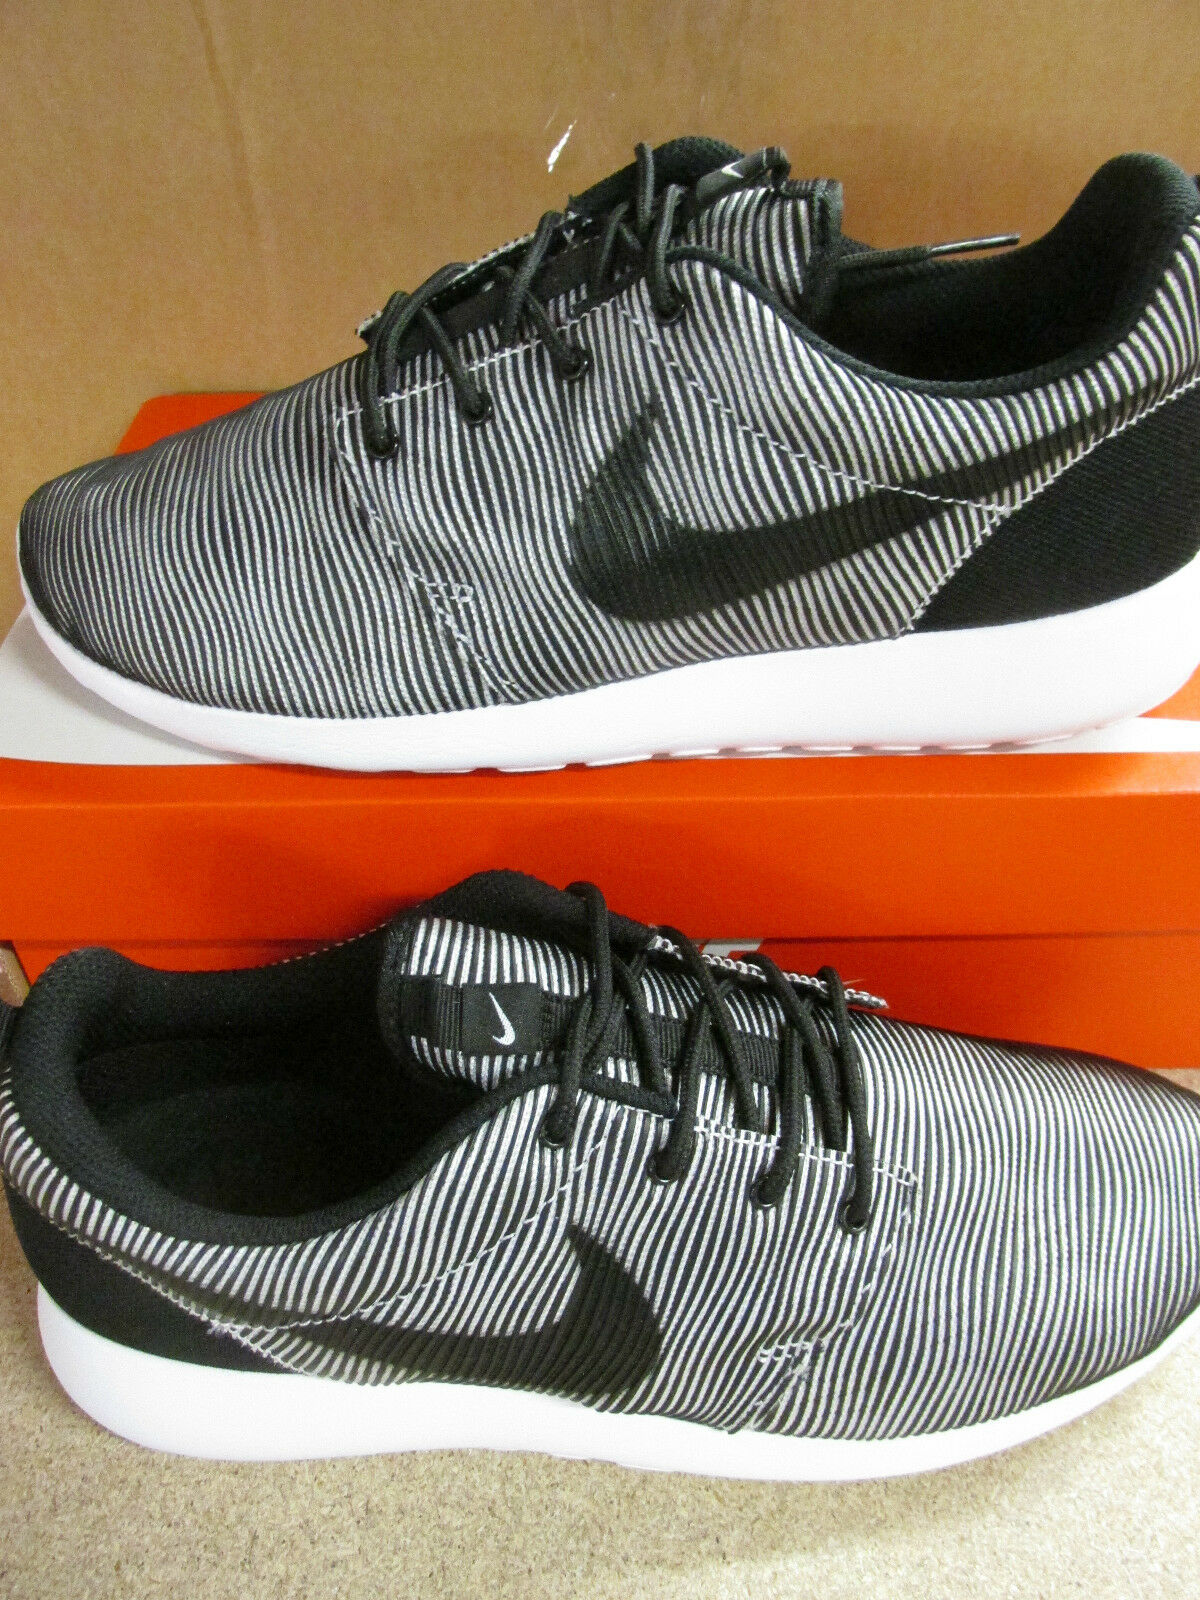 Nike Roshe One Prem Plus Mens Trainers 807611 100 Sneakers Shoes